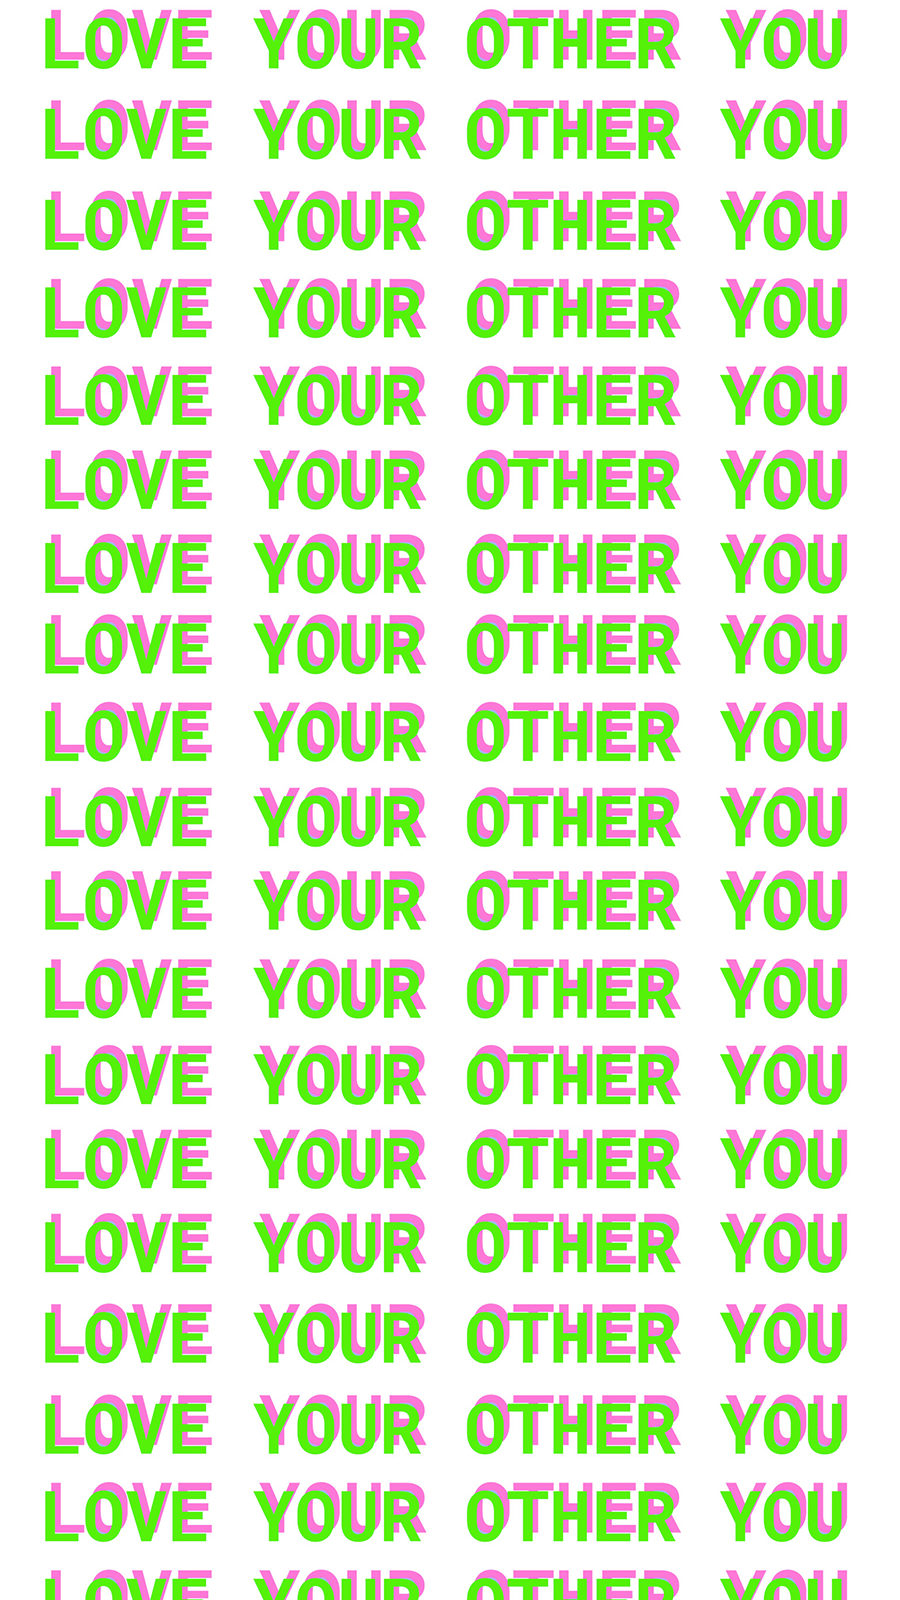 love-your-other-you